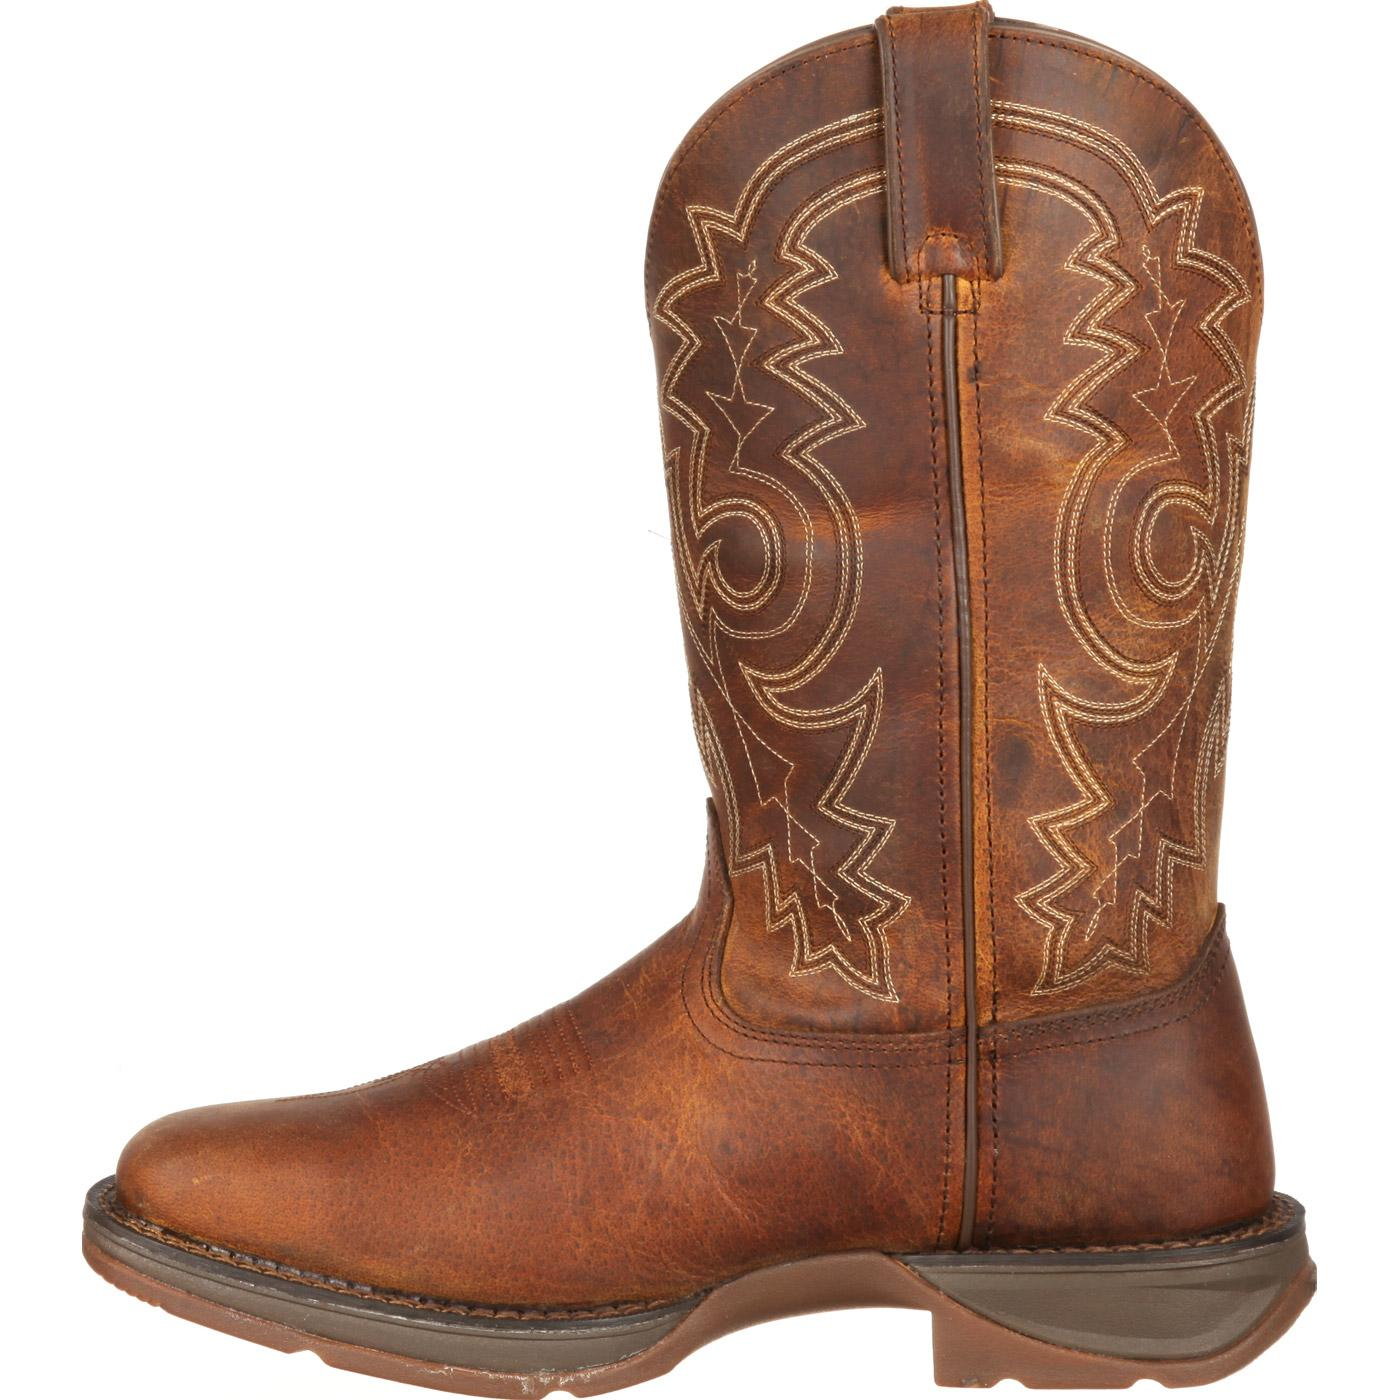 Rebel by Durango: Men's SteelToe Western Work Boots, #DB4343